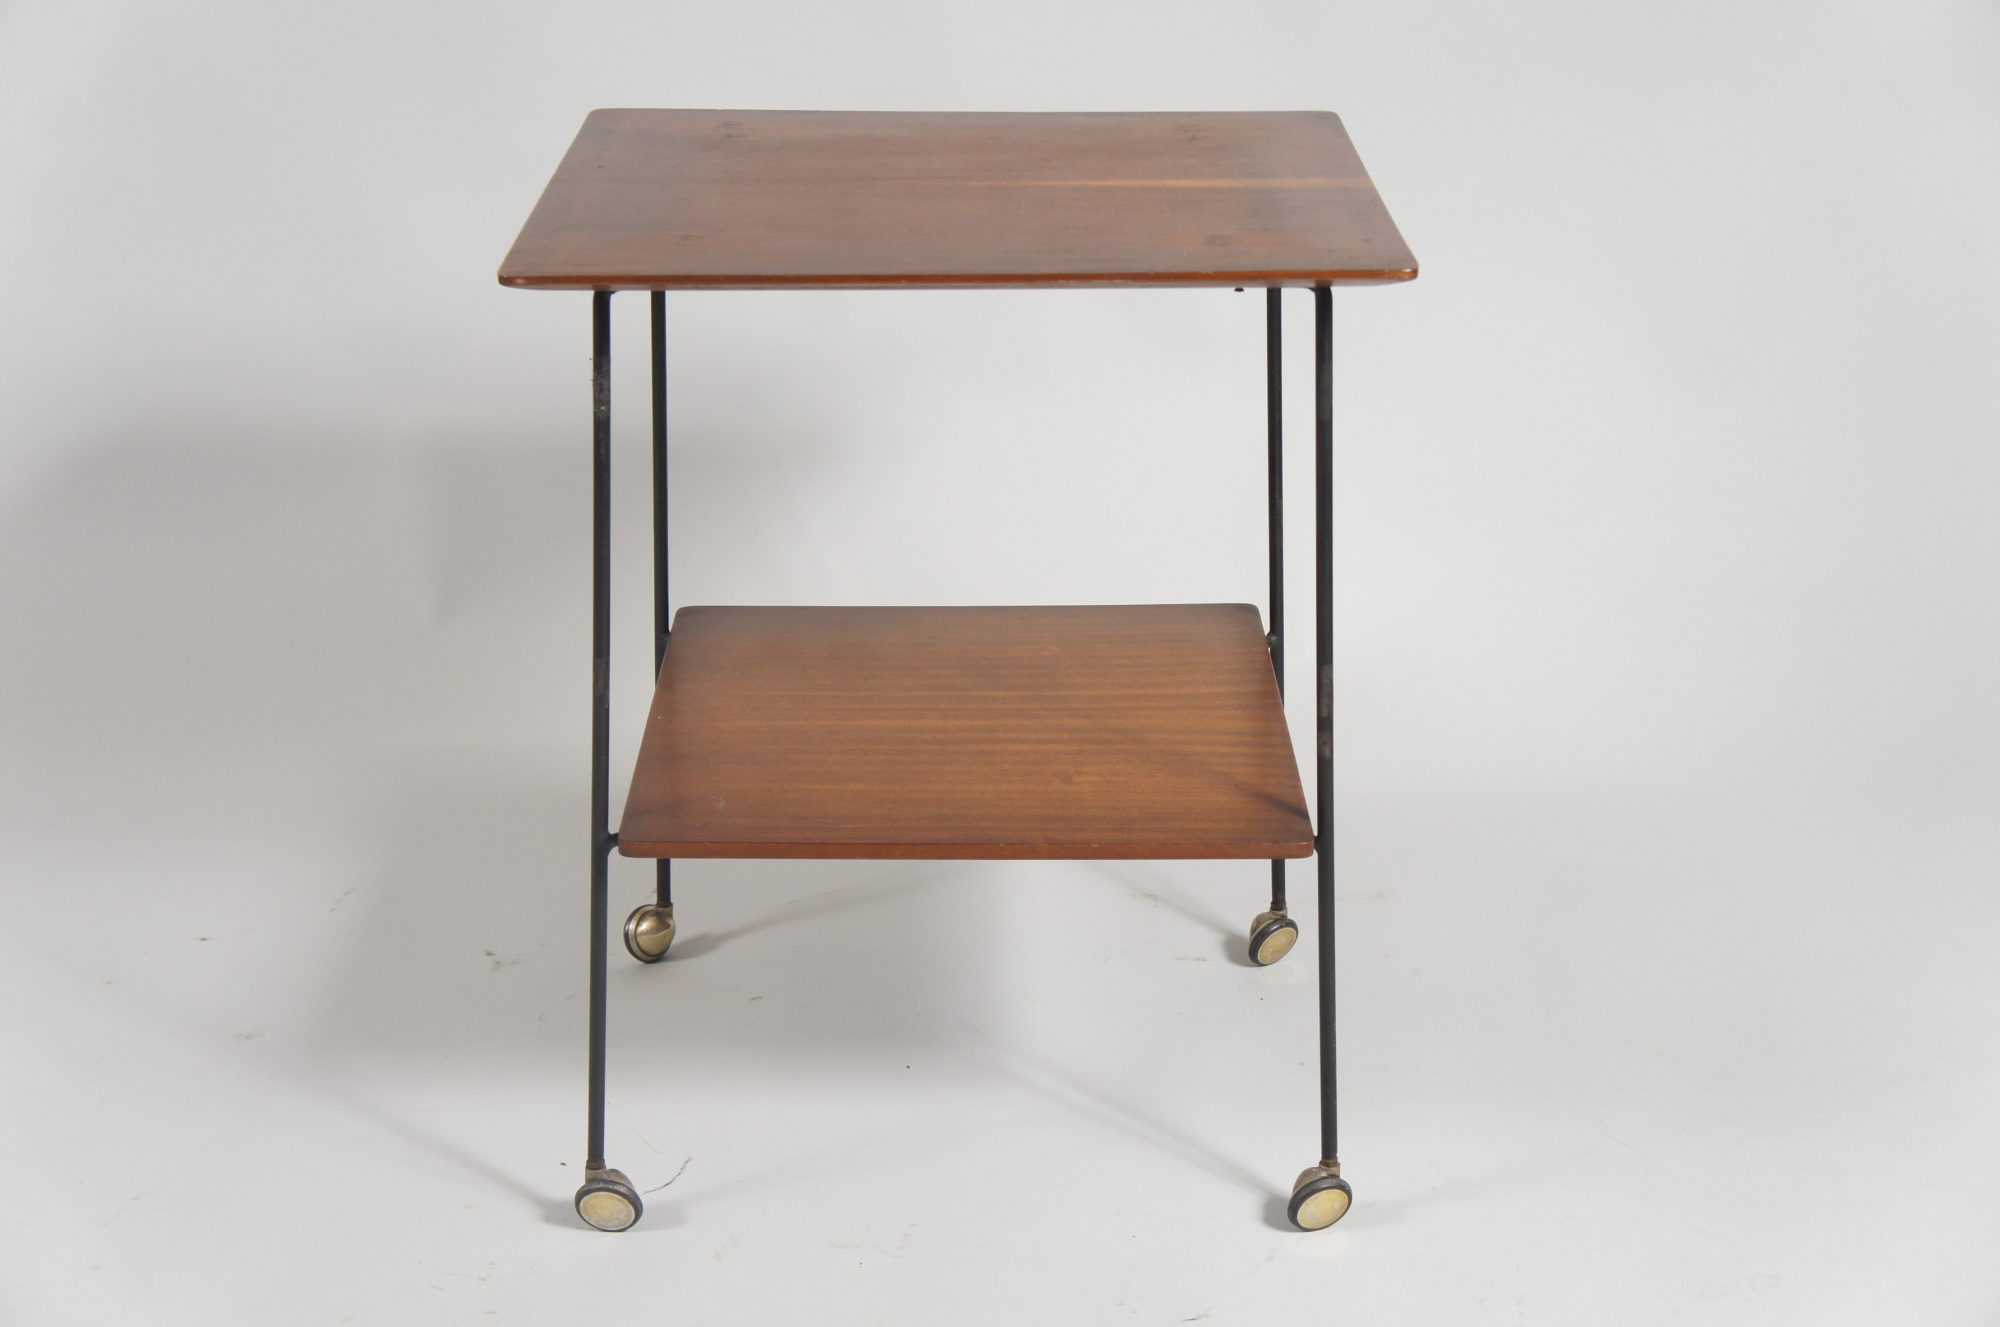 Italian Mid Century Modern Small Table on Wheels